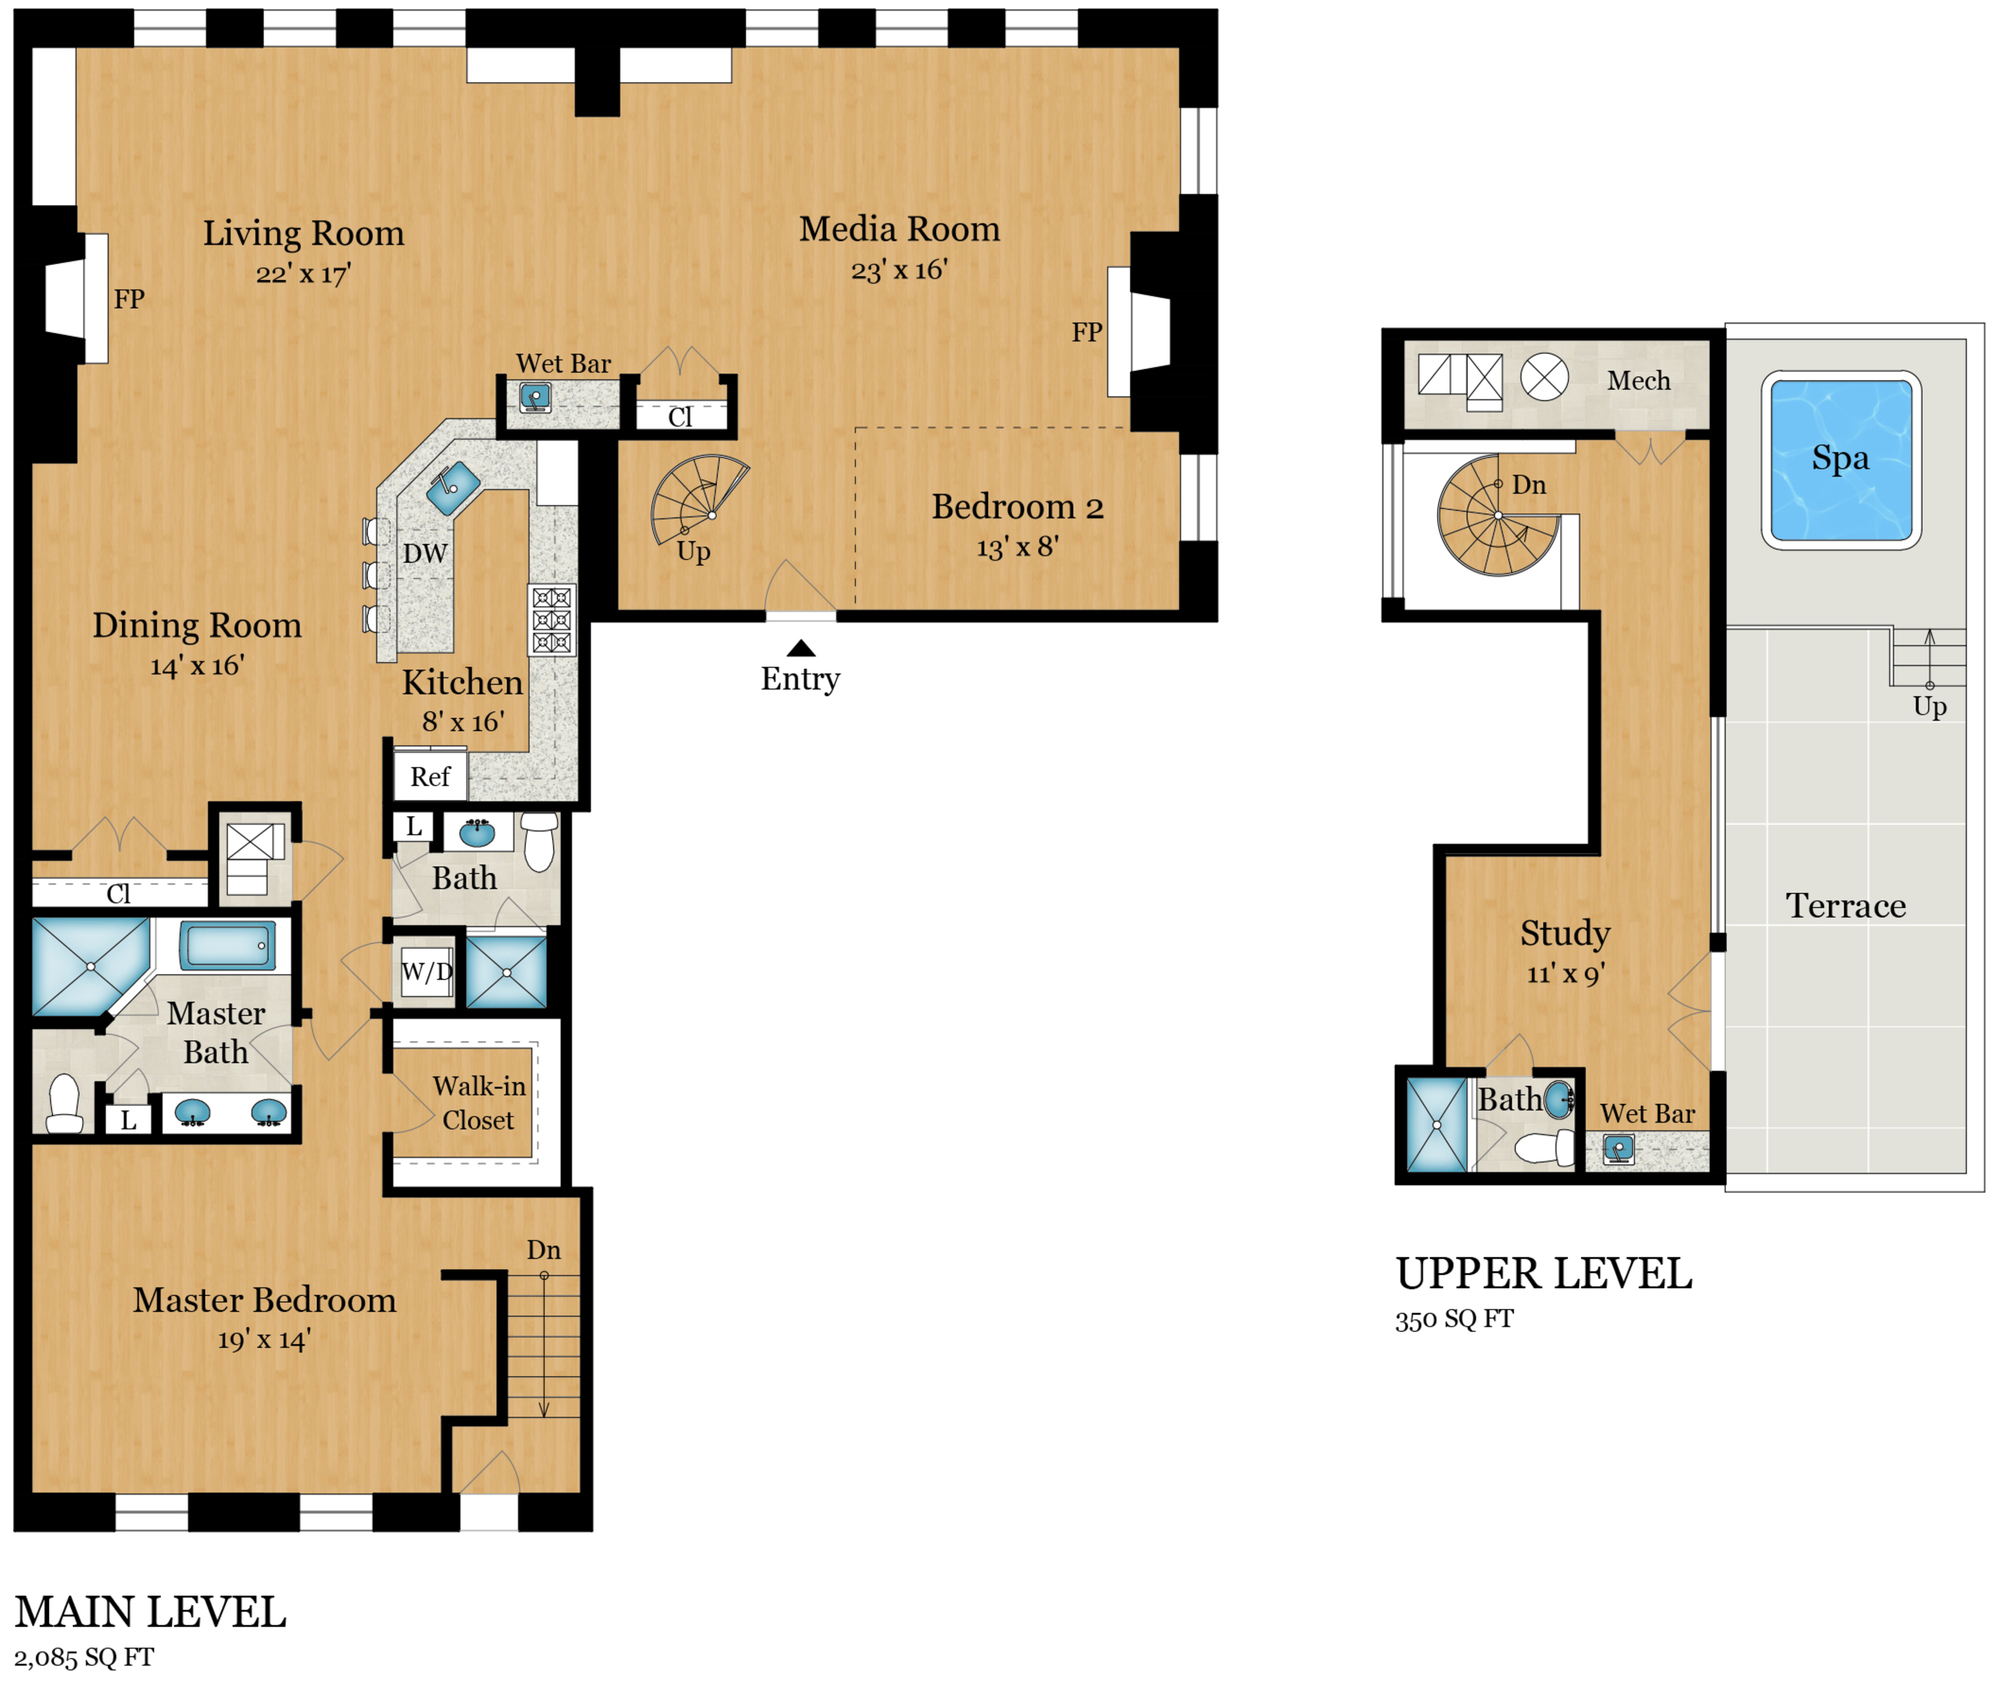 Apartment apartment floor plans designs floor for 100 square feet room size